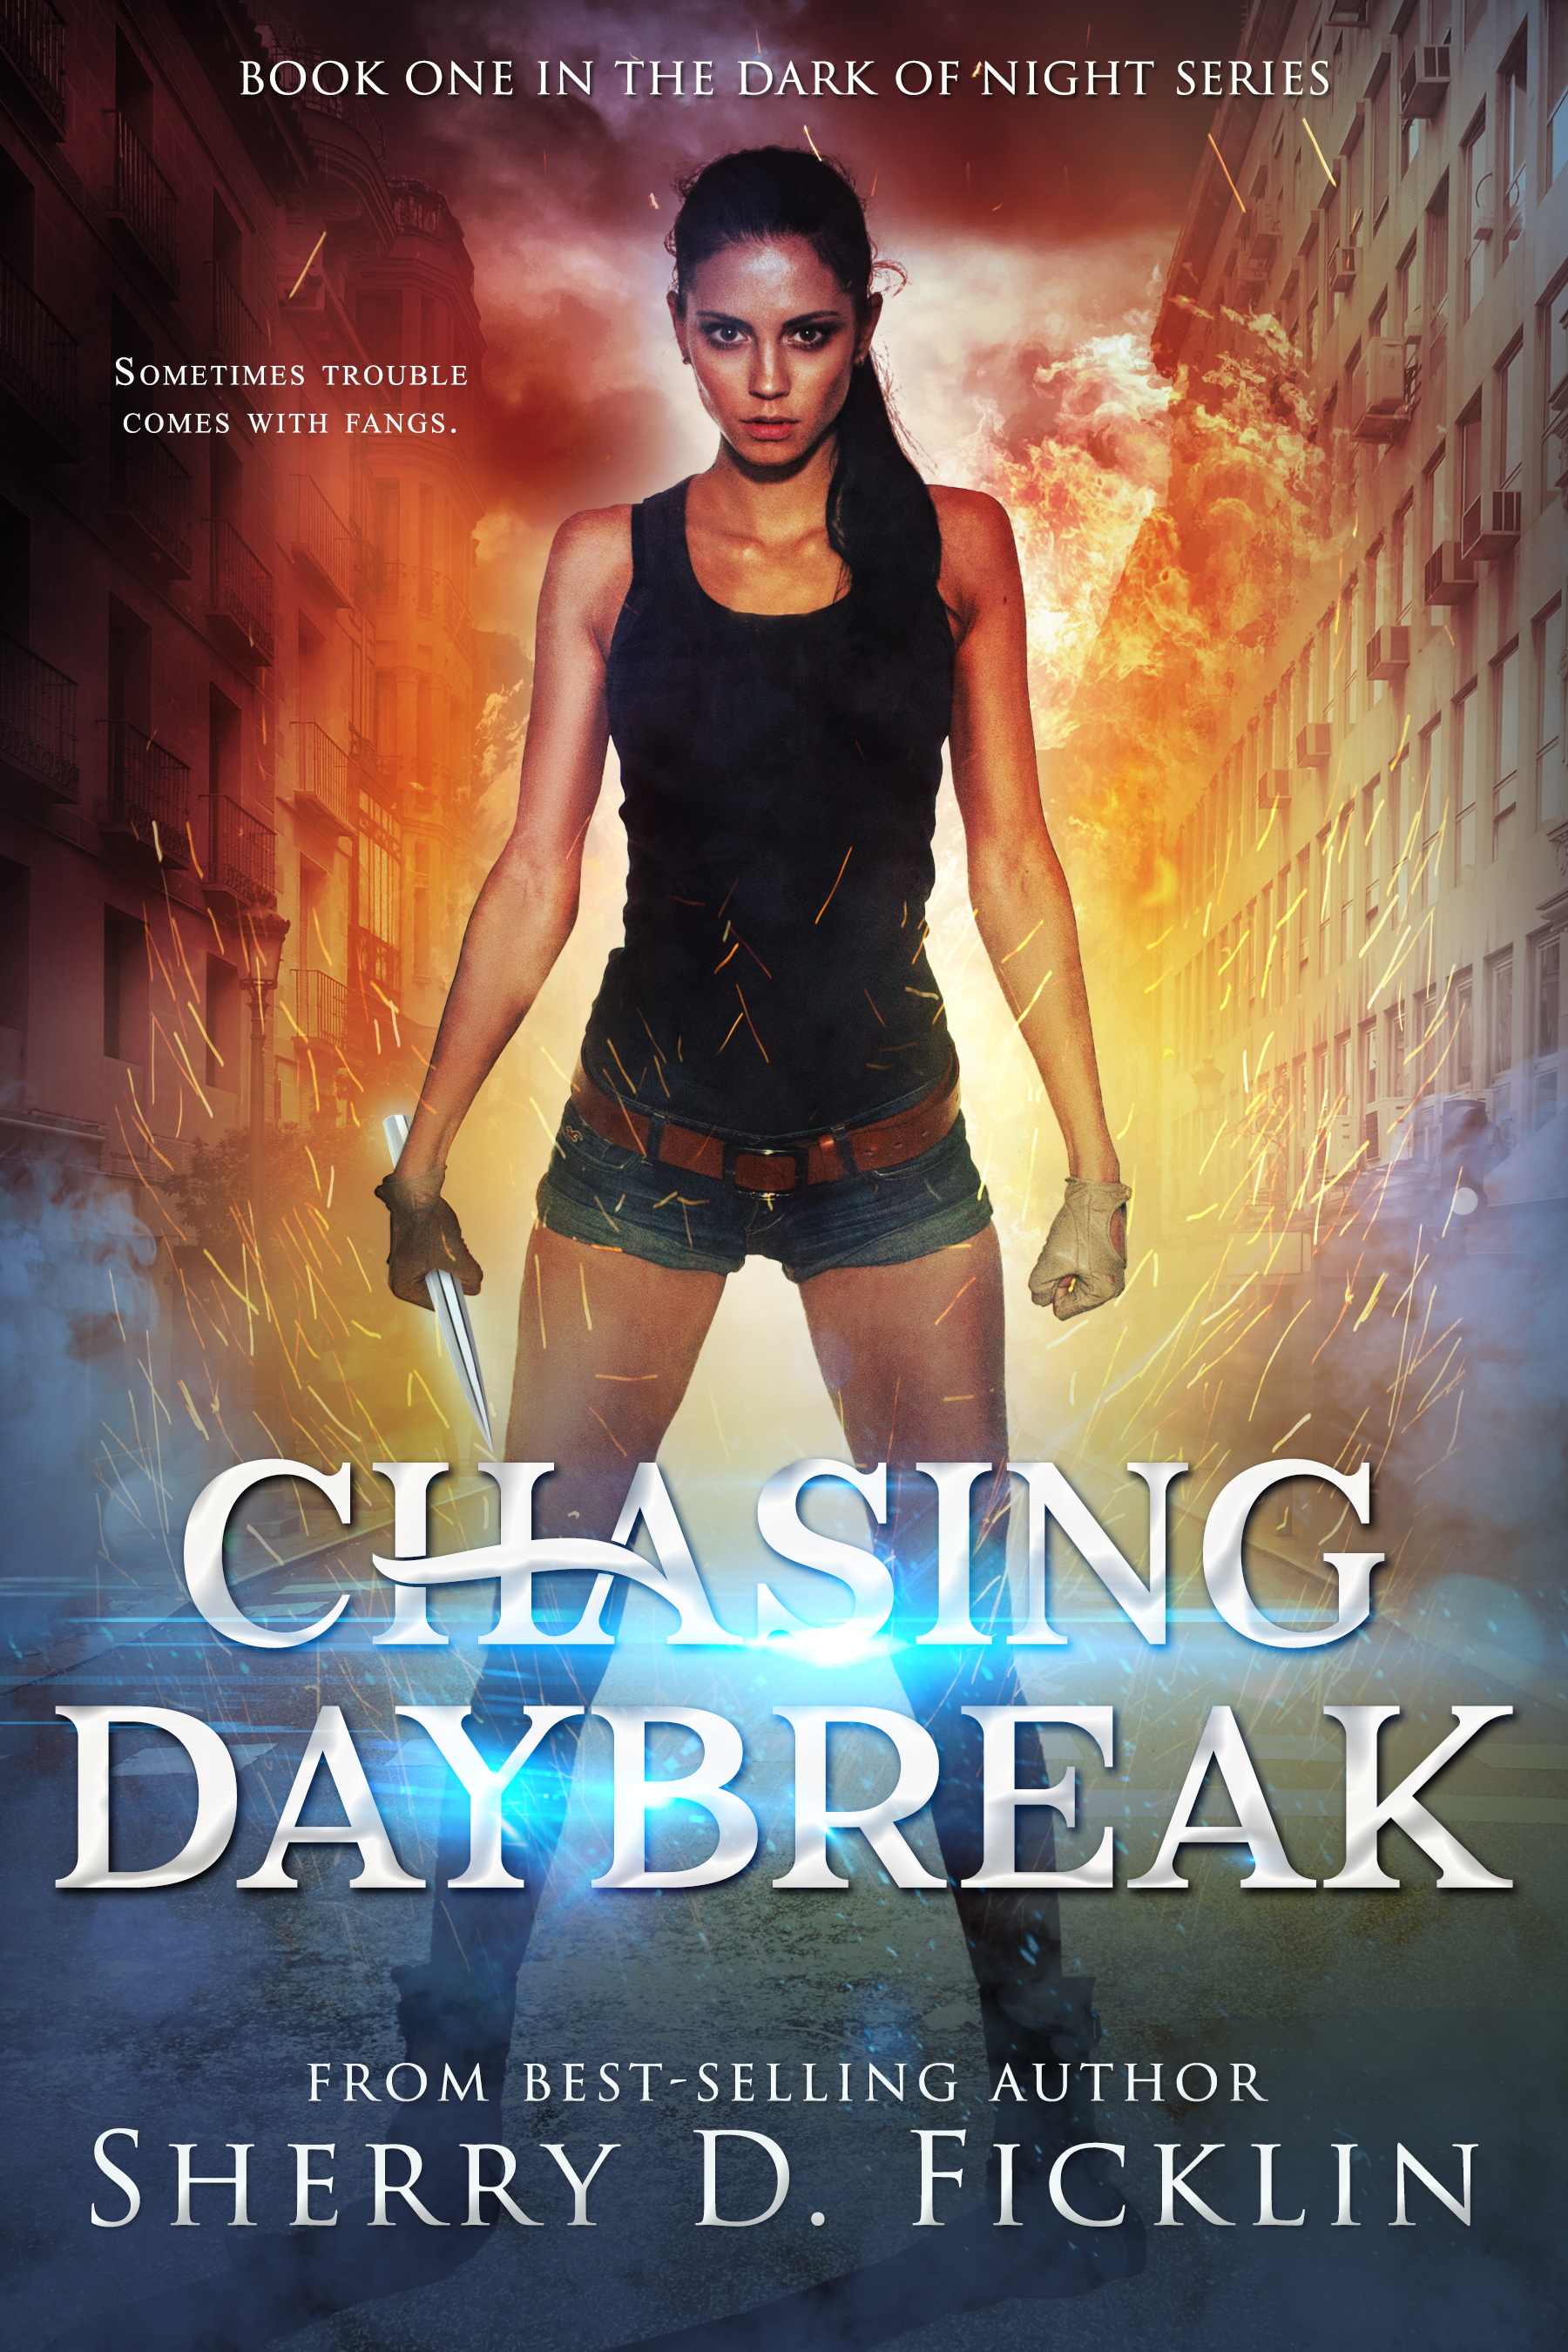 Chasing Daybreak by Sherry D. Ficklin